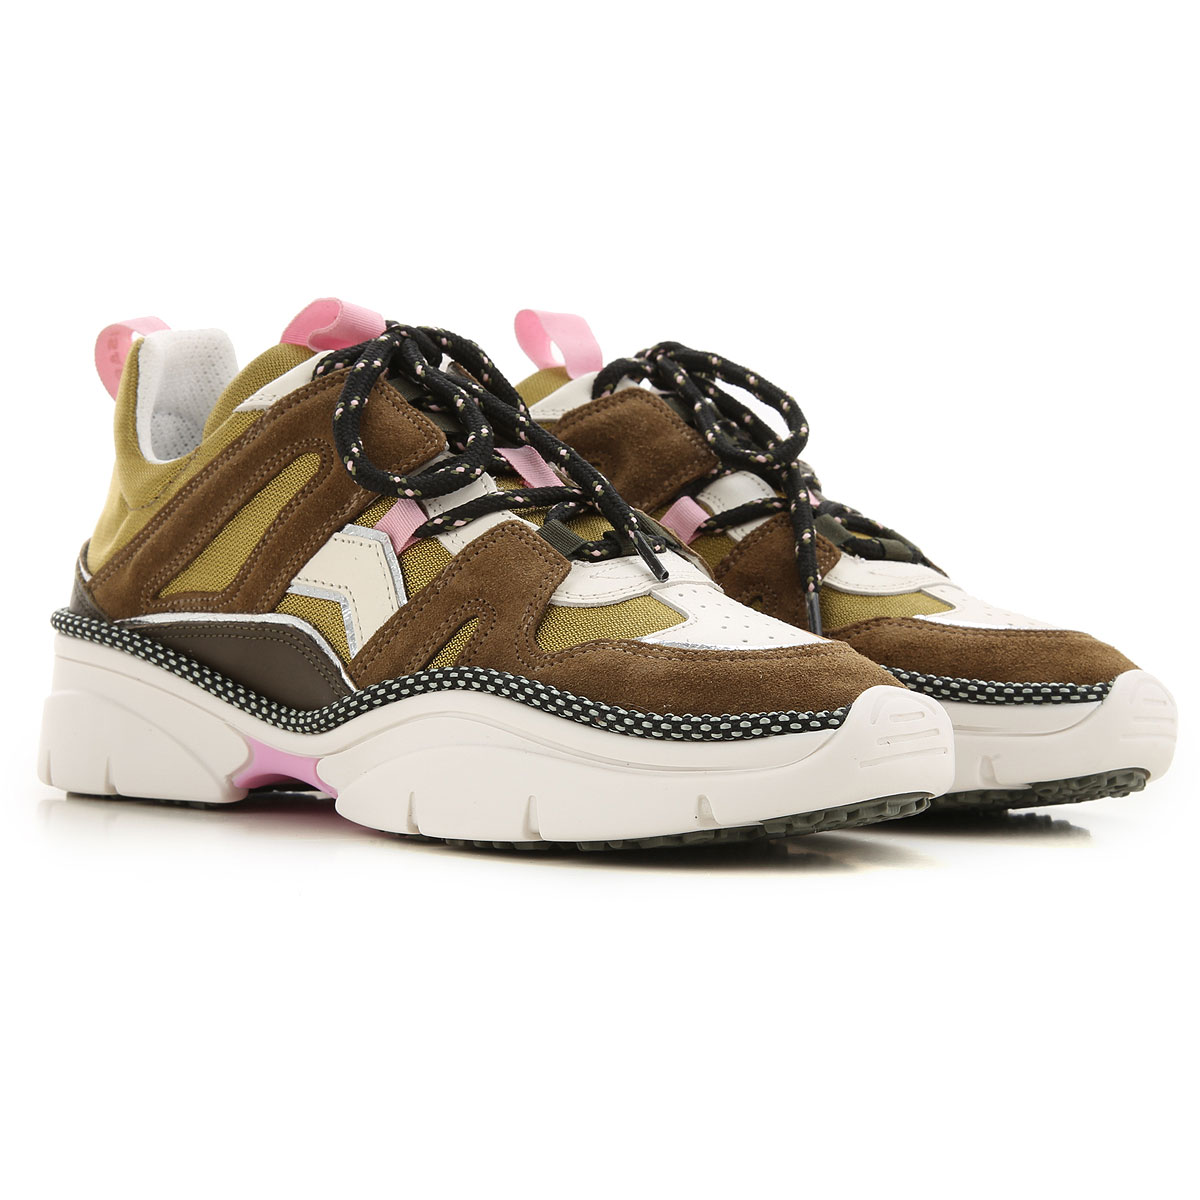 Isabel Marant Sneakers for Women On Sale, Bronze, Suede leather, 2019, 10 6 7 9